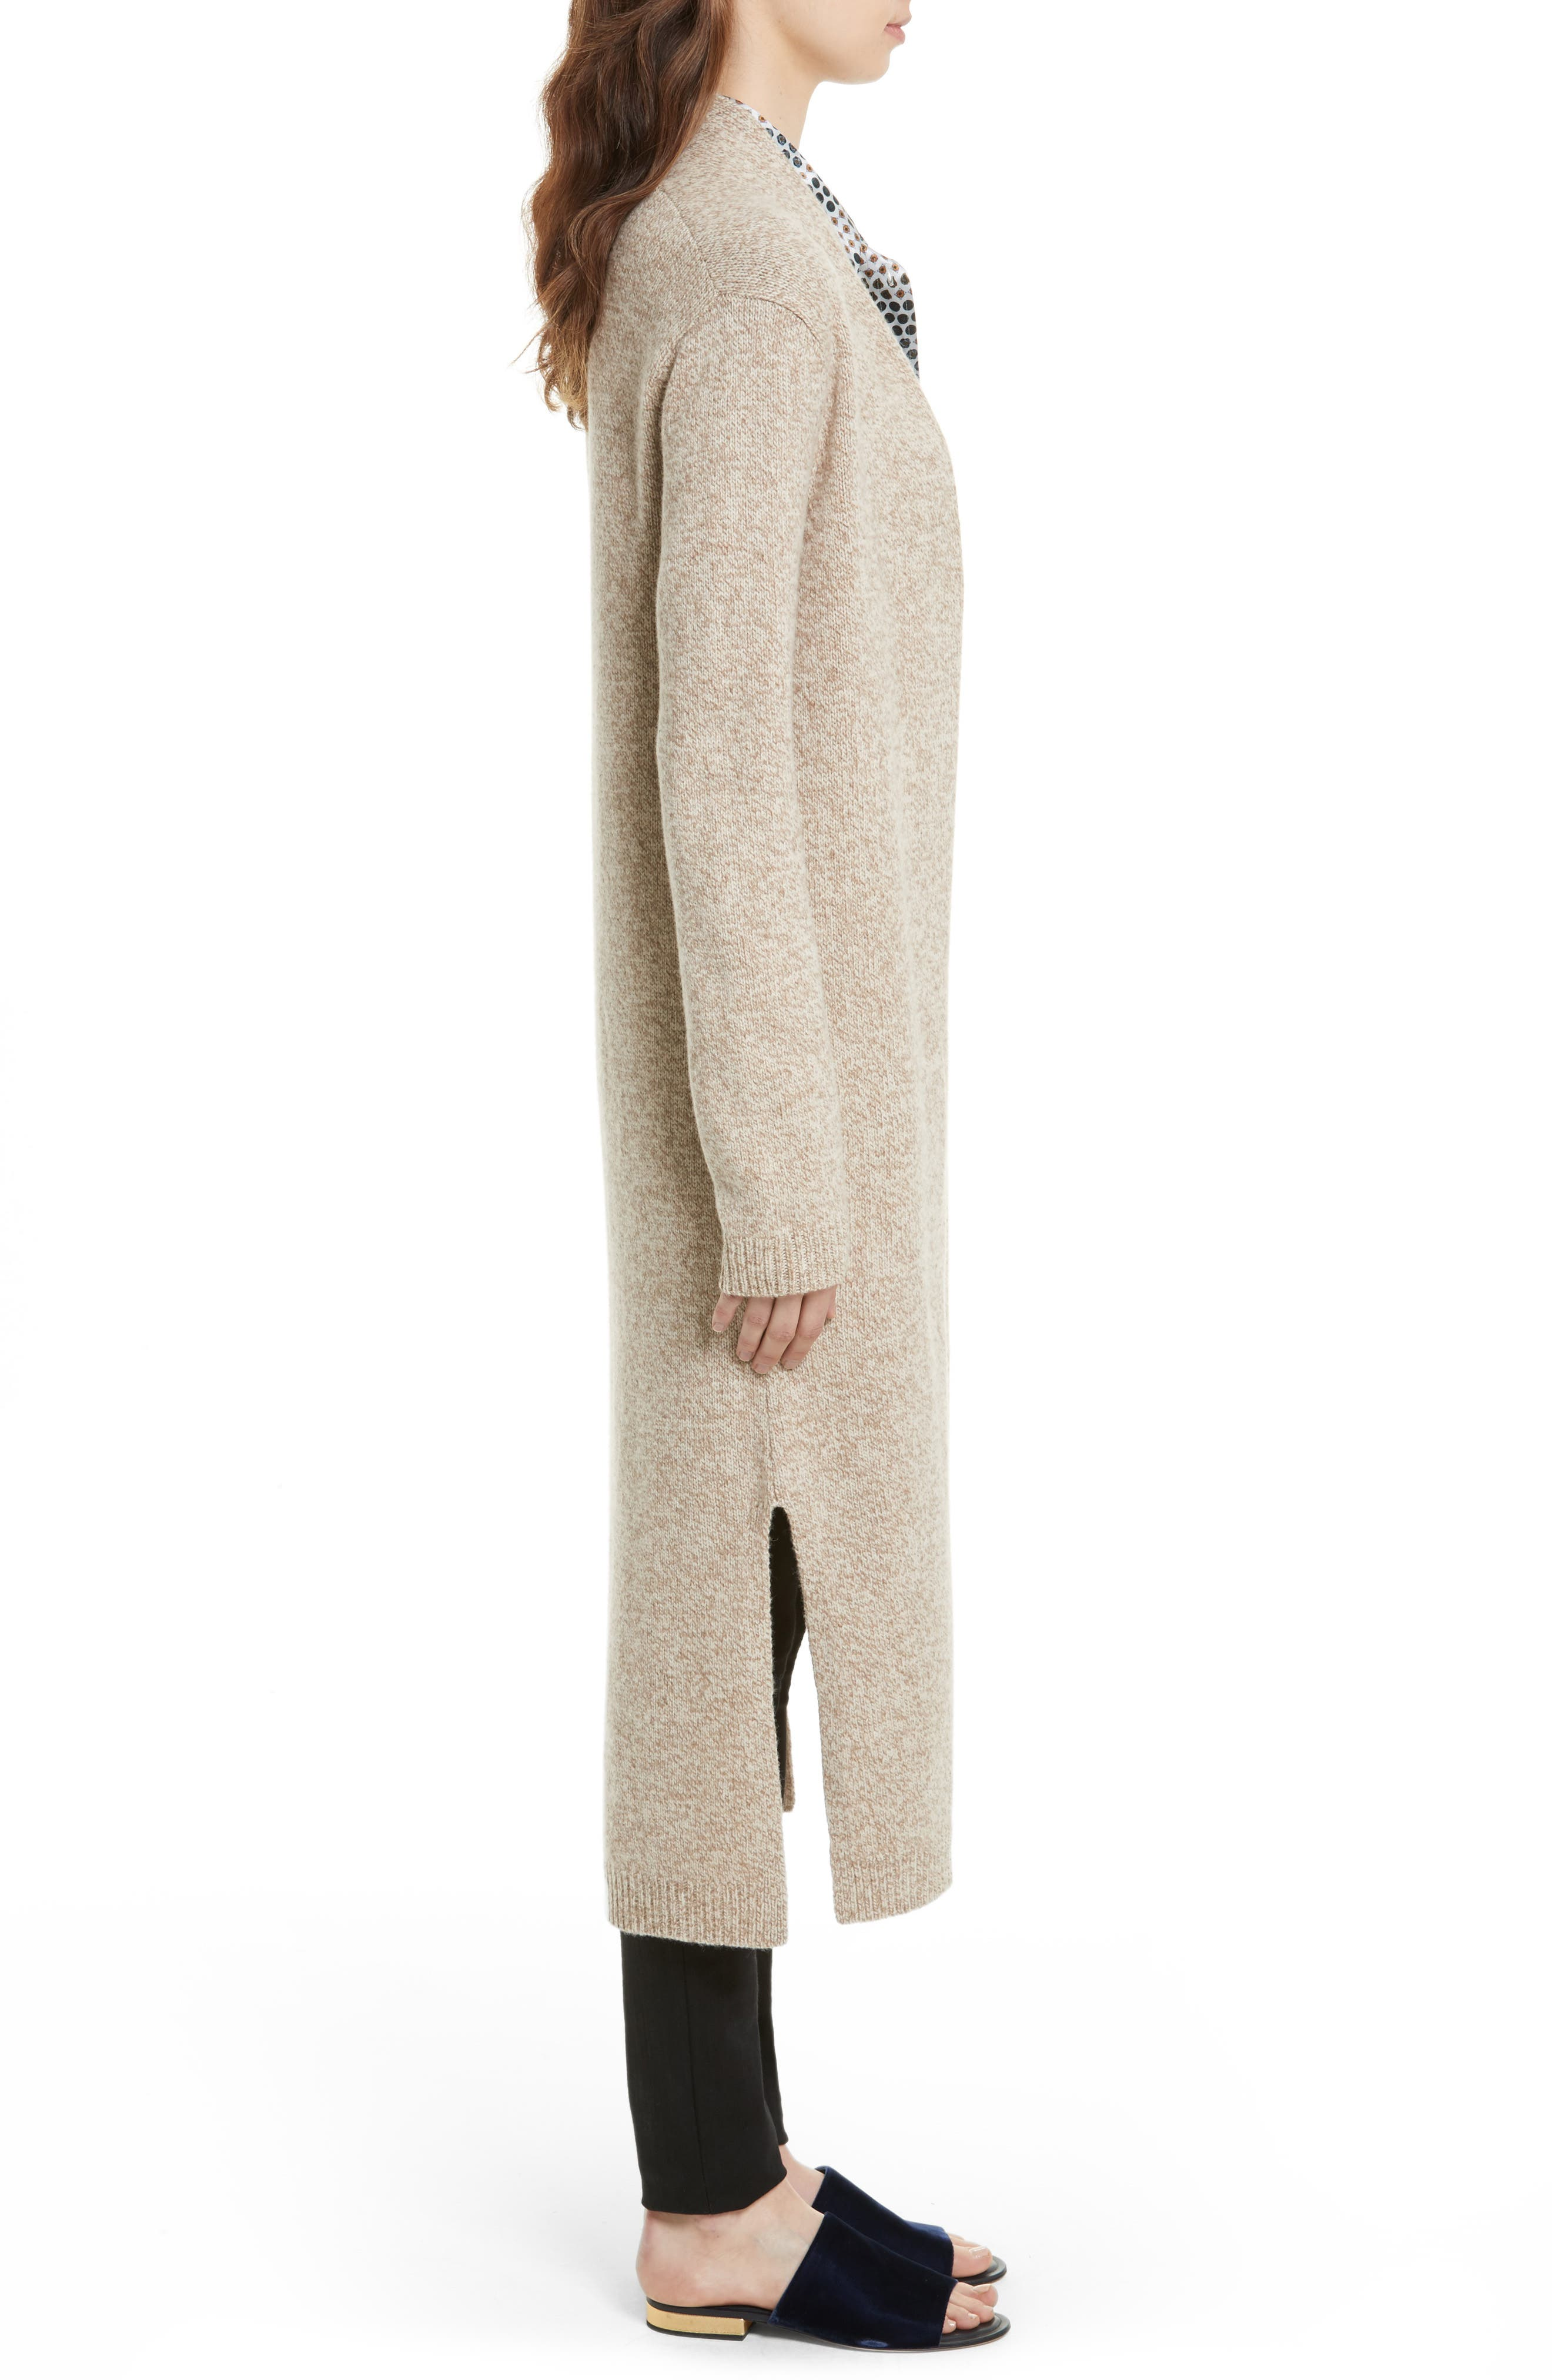 Thoren Long Wool Cardigan,                             Alternate thumbnail 3, color,                             285